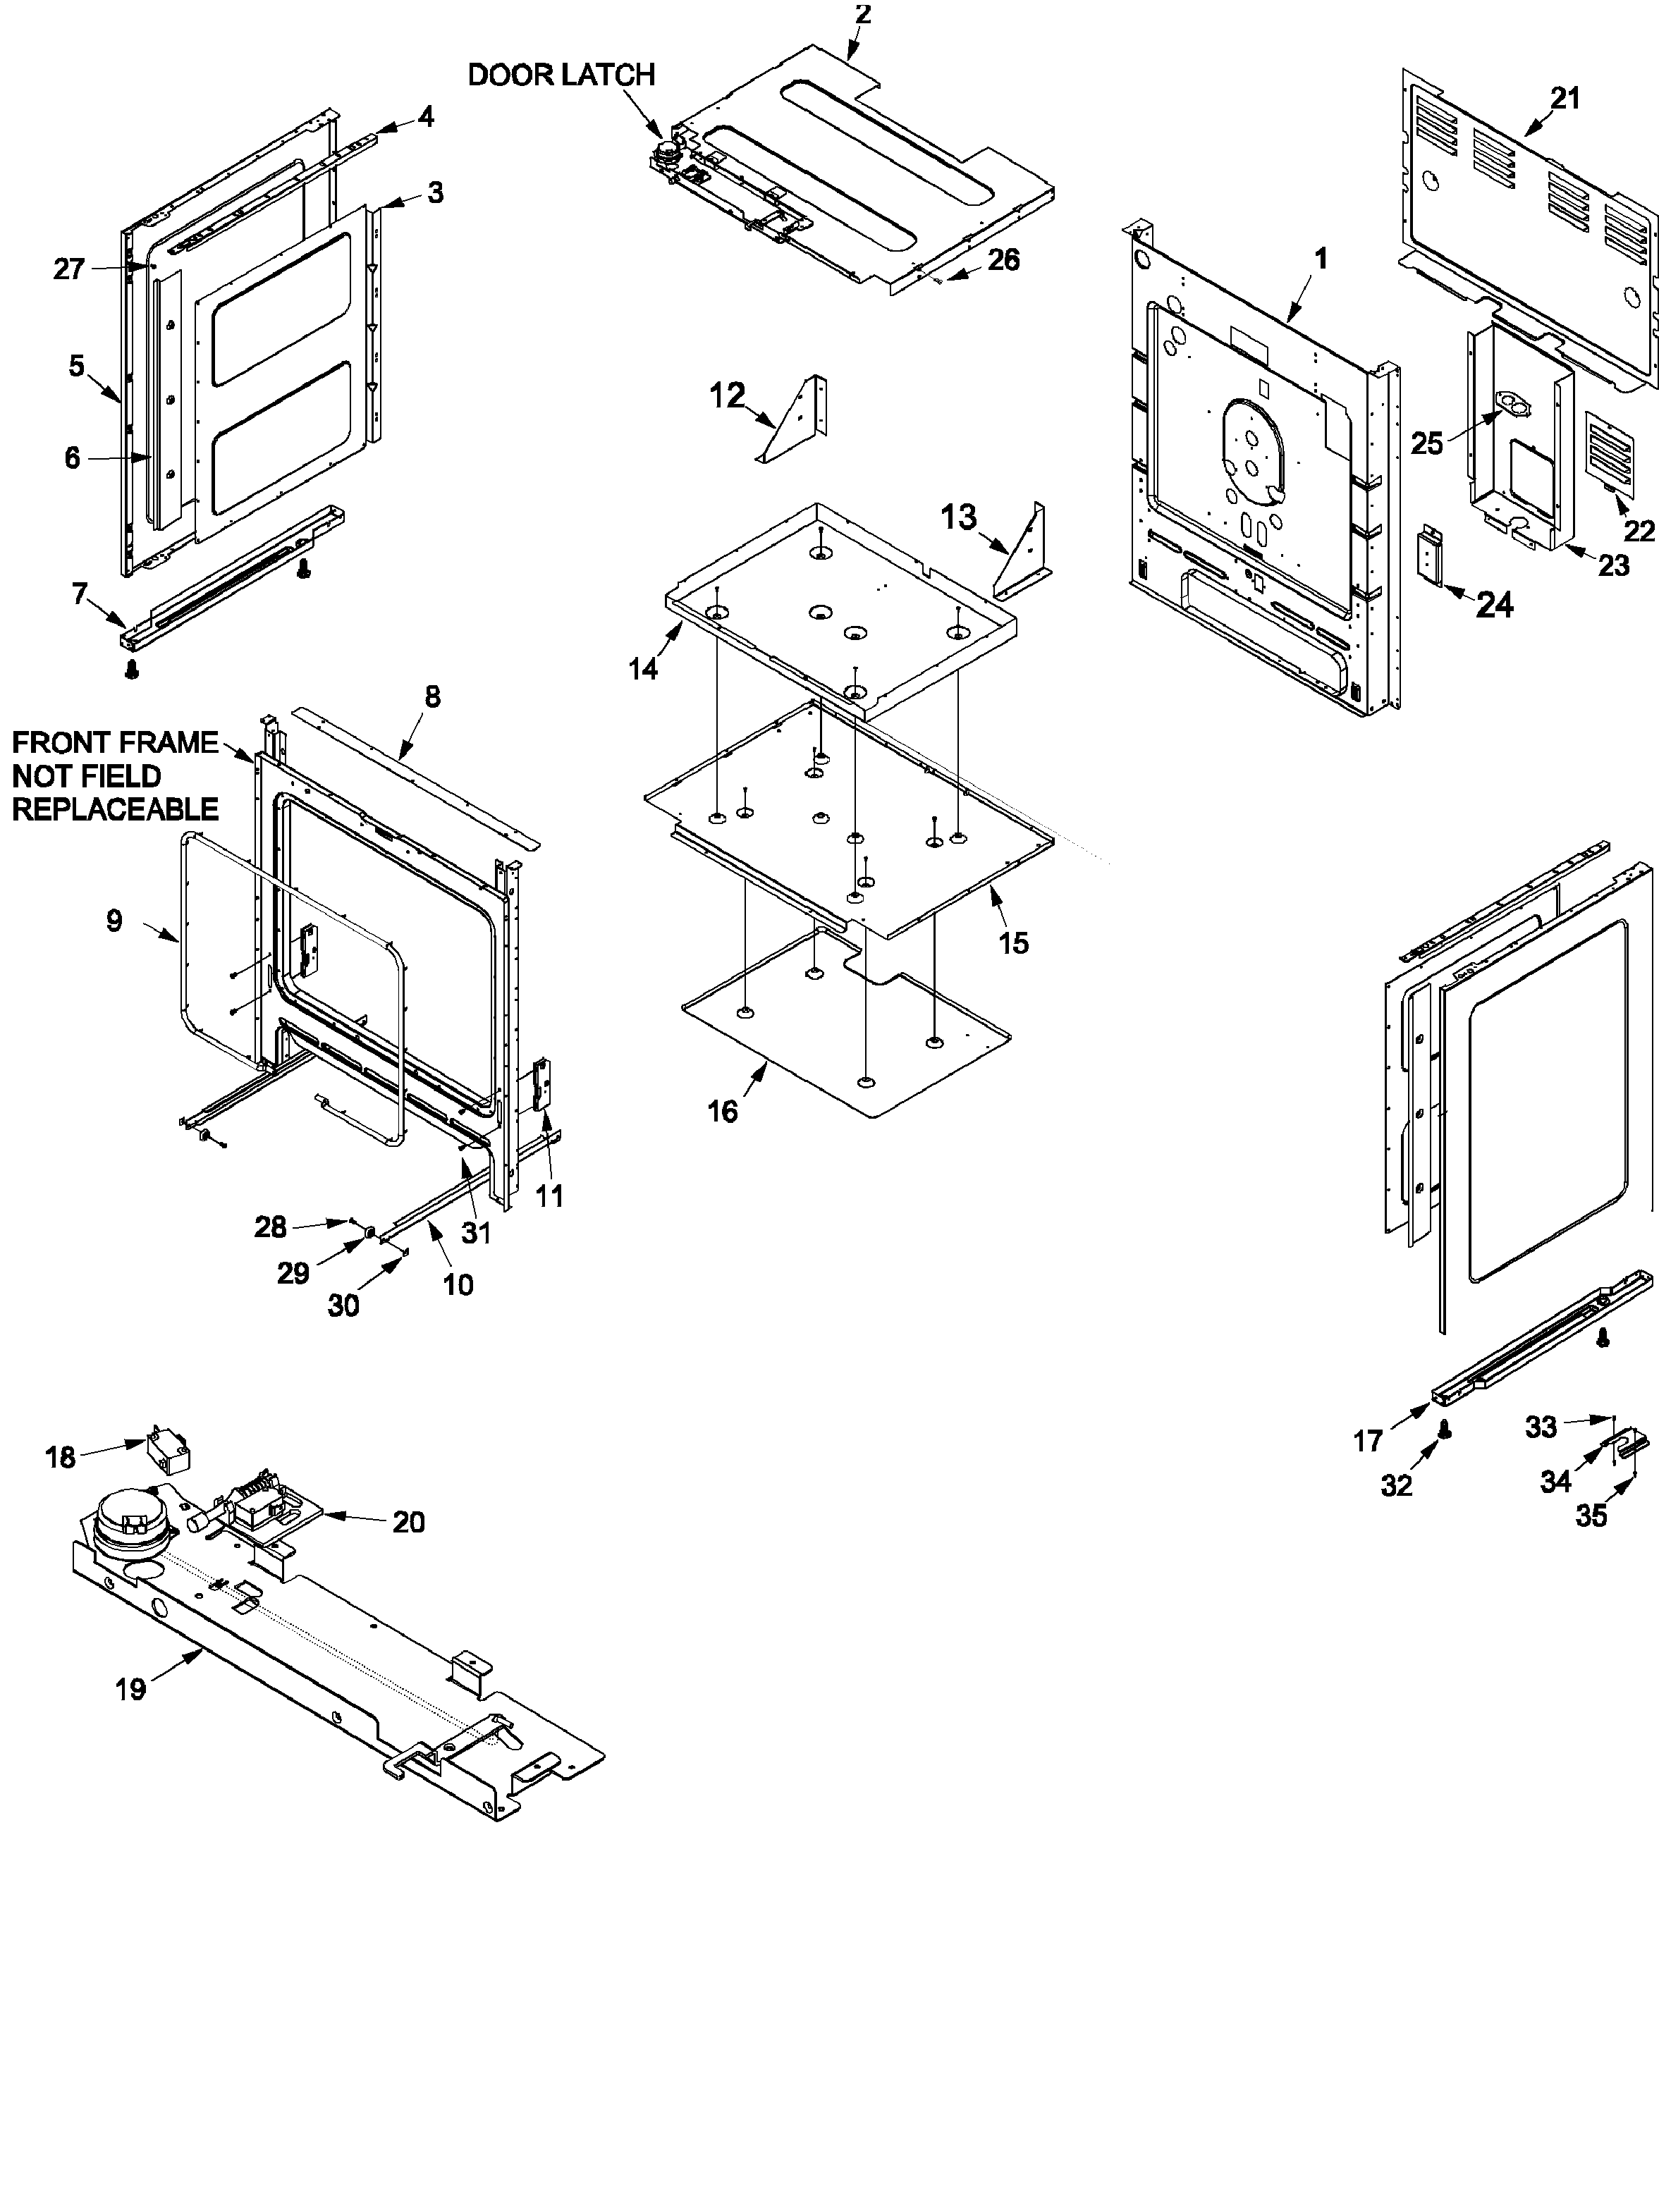 Amana DCF4205AW-PDCF4205 cabinet diagram